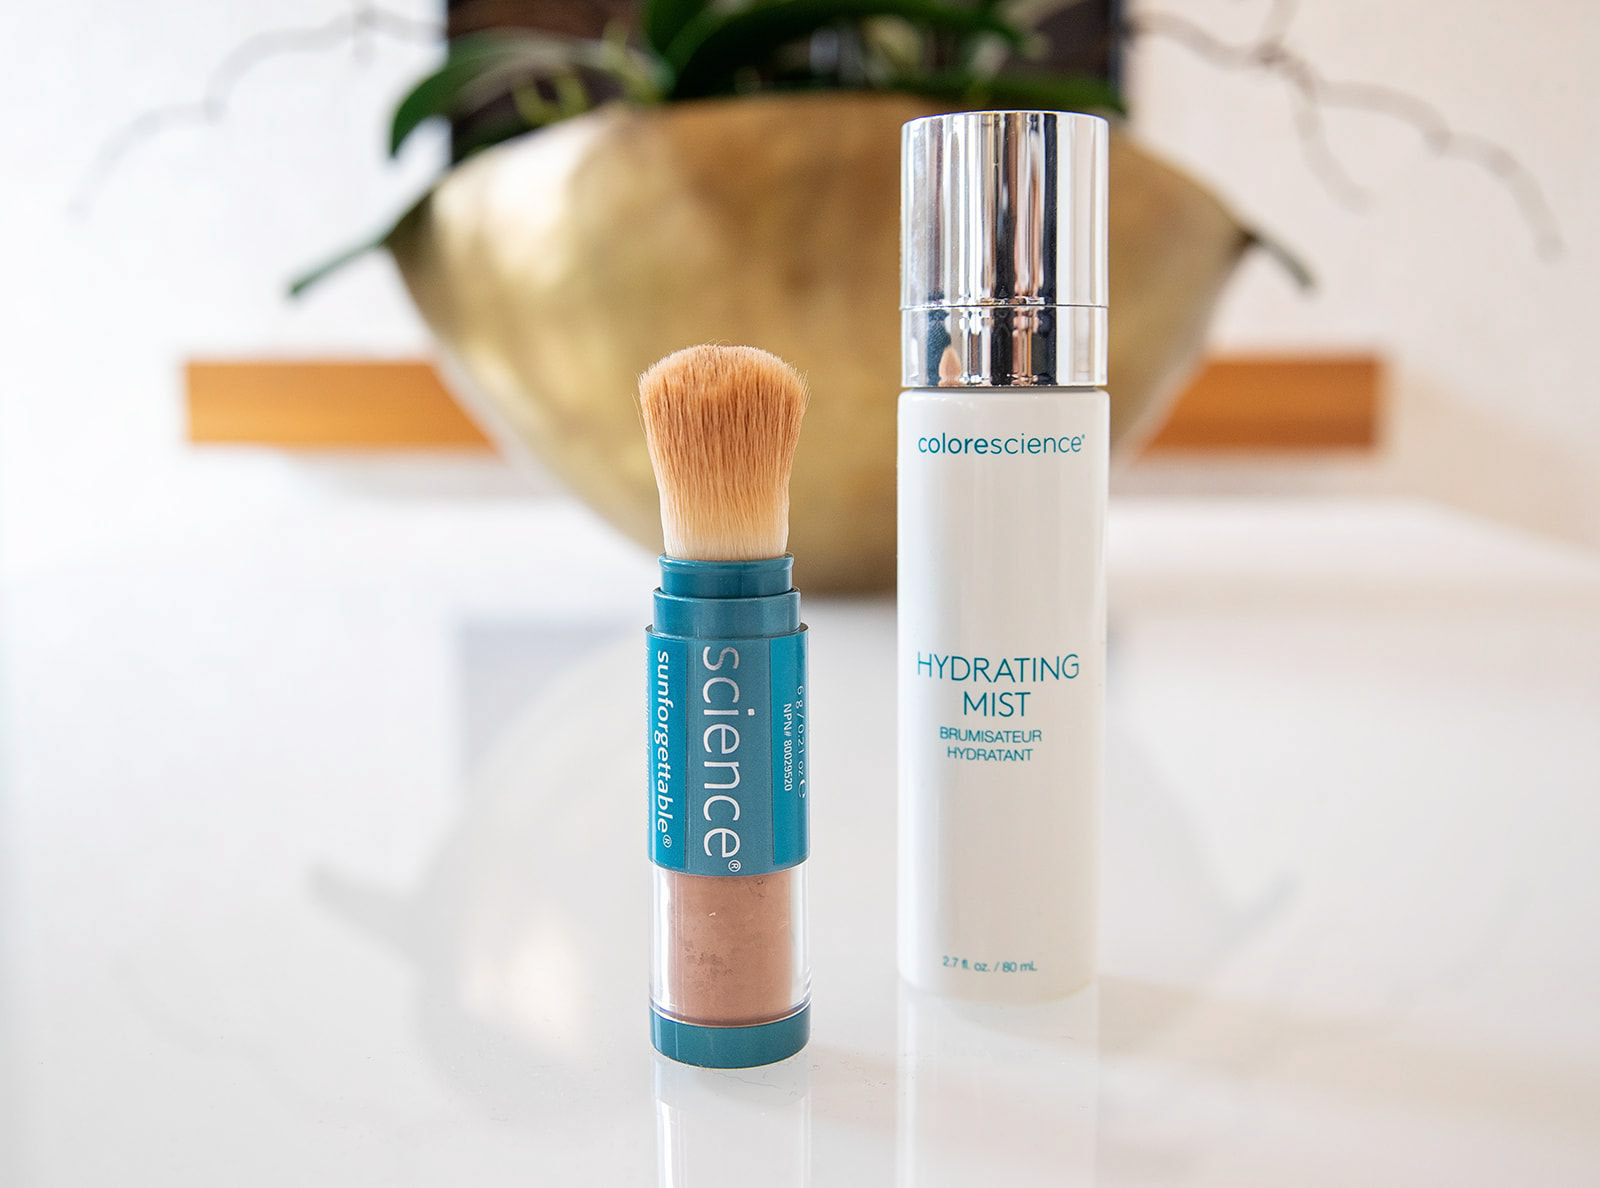 Loose Mineral Sunscreen by Colorescience